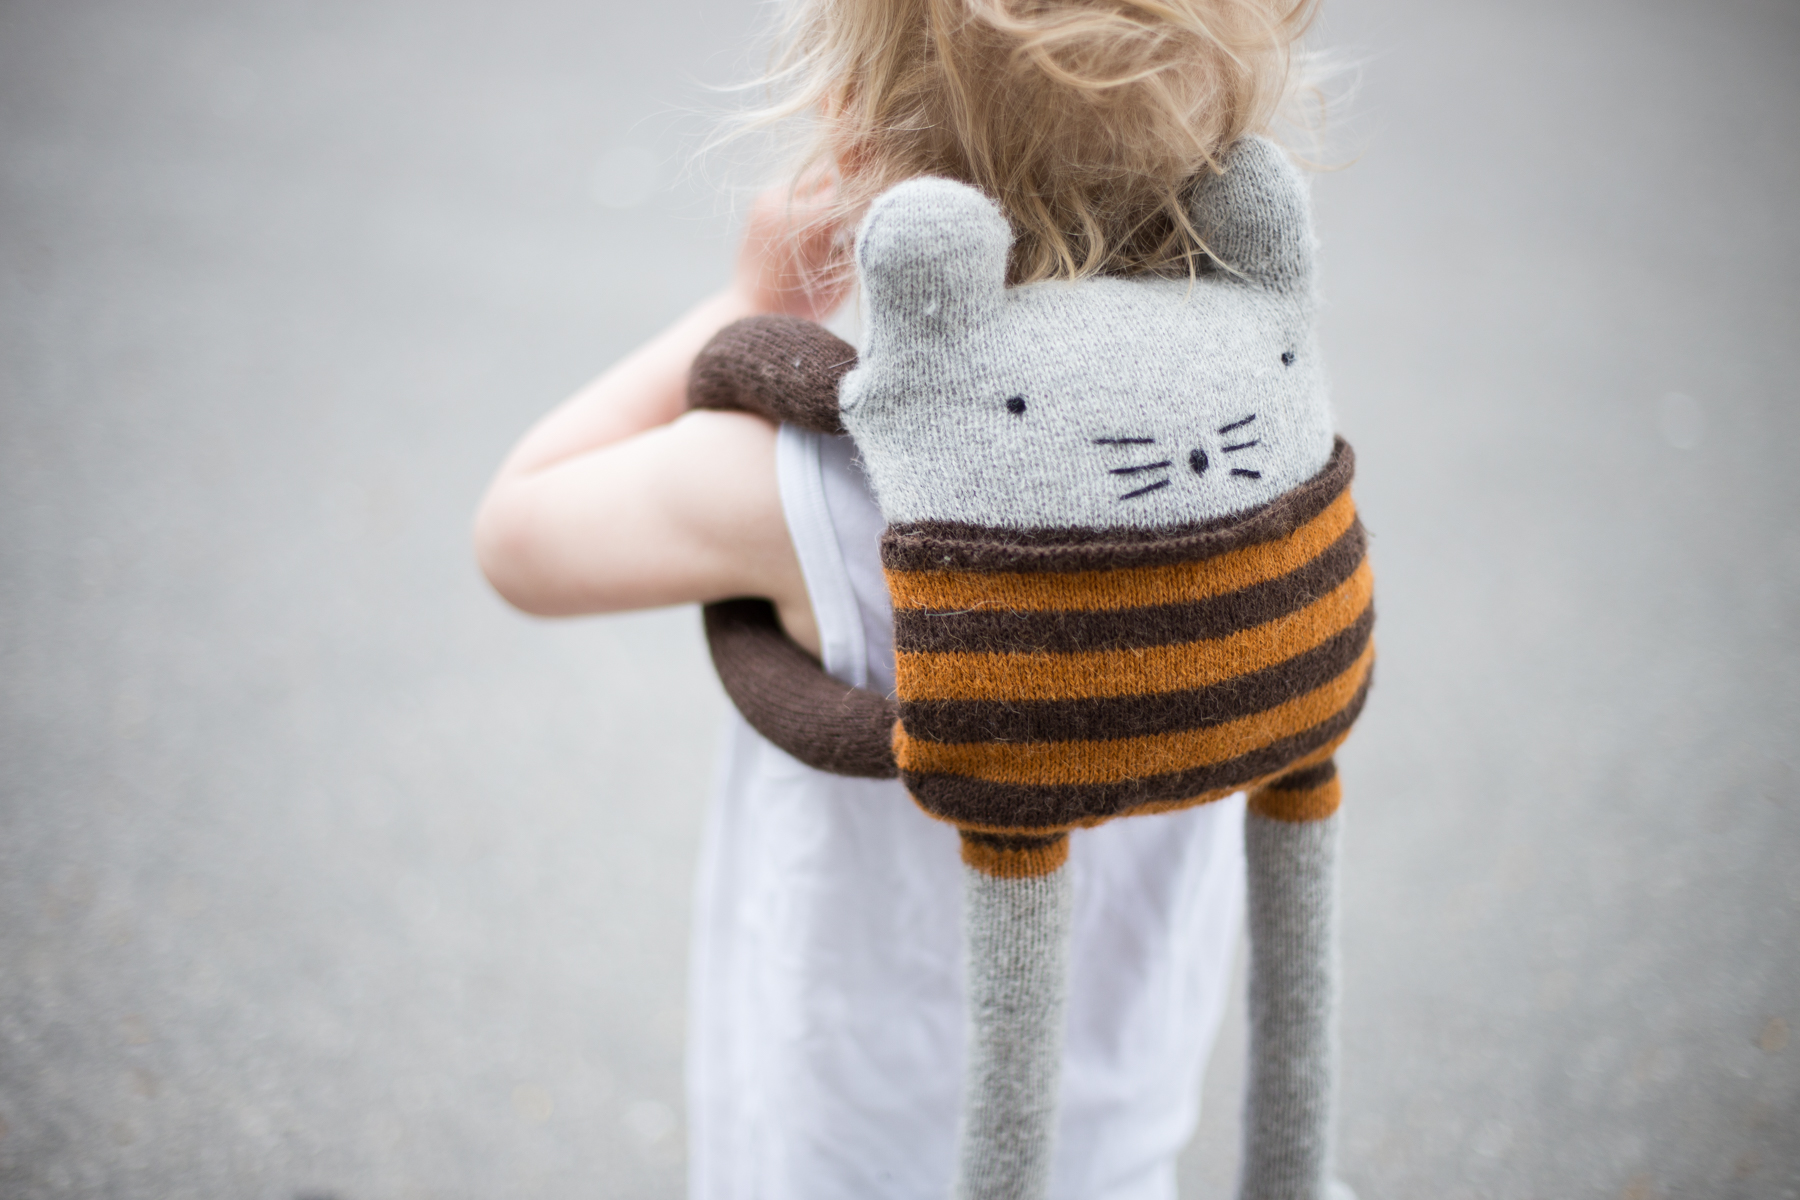 Backpack knitted toy knitting pattern